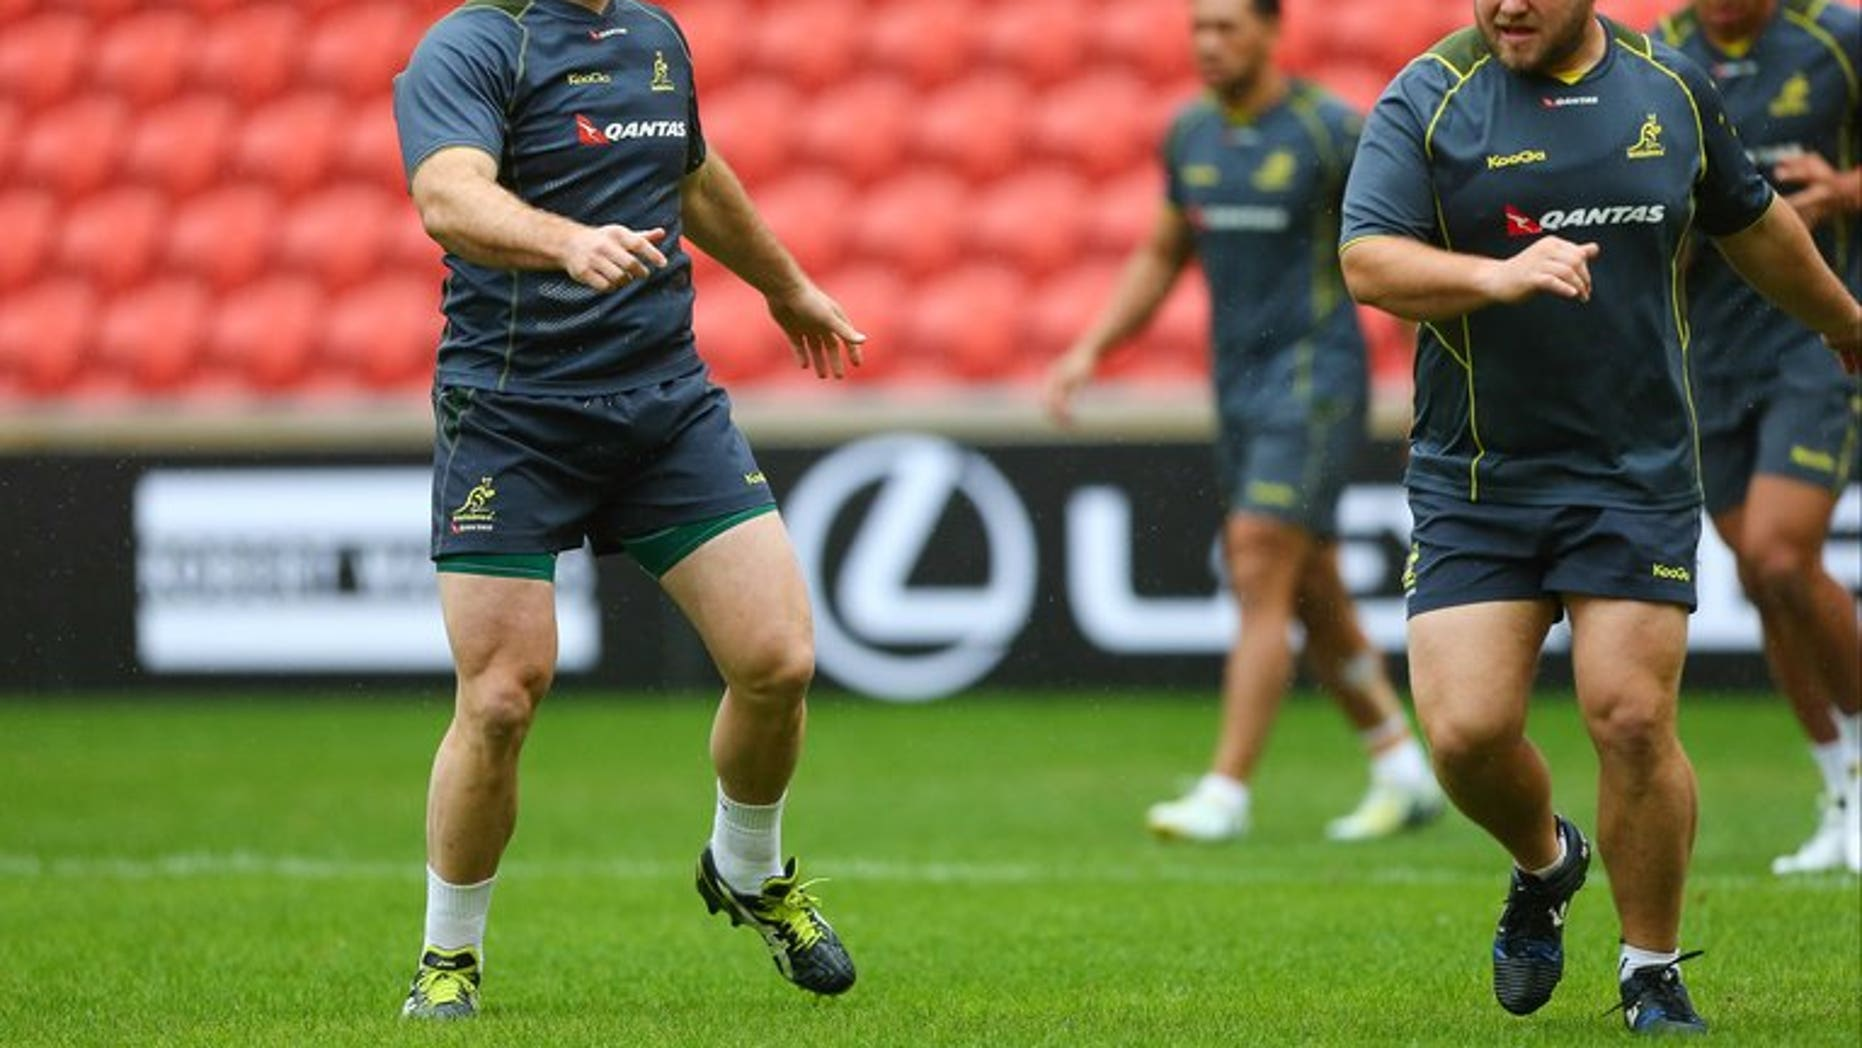 Australian rugby union players Stephen Moore (L) and Benn Robinson (R) take part in the captain's run at Suncorp Stadium in Brisbane on June 21, 2013. Moore on Friday said the referee and dominating the scrum held the key to victory in Saturday's series decider against the British and Irish Lions.